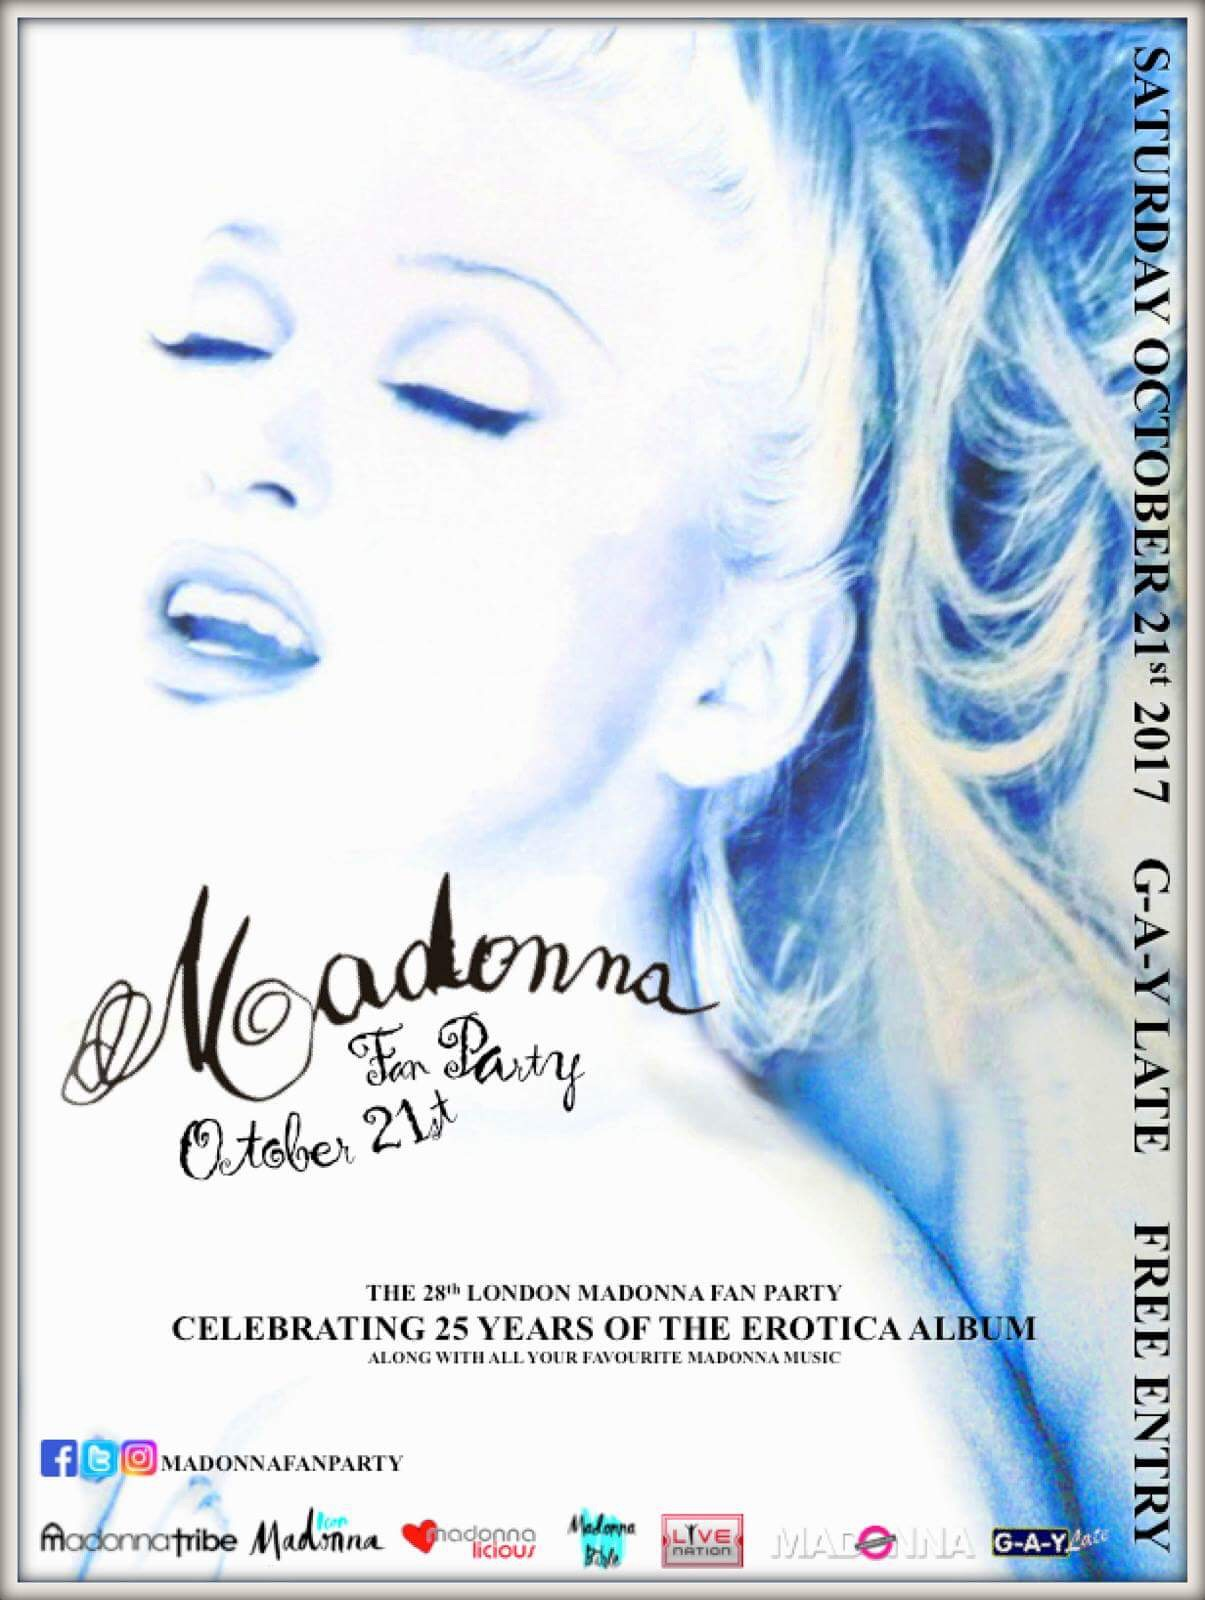 The 28th London Madonna Fan Party